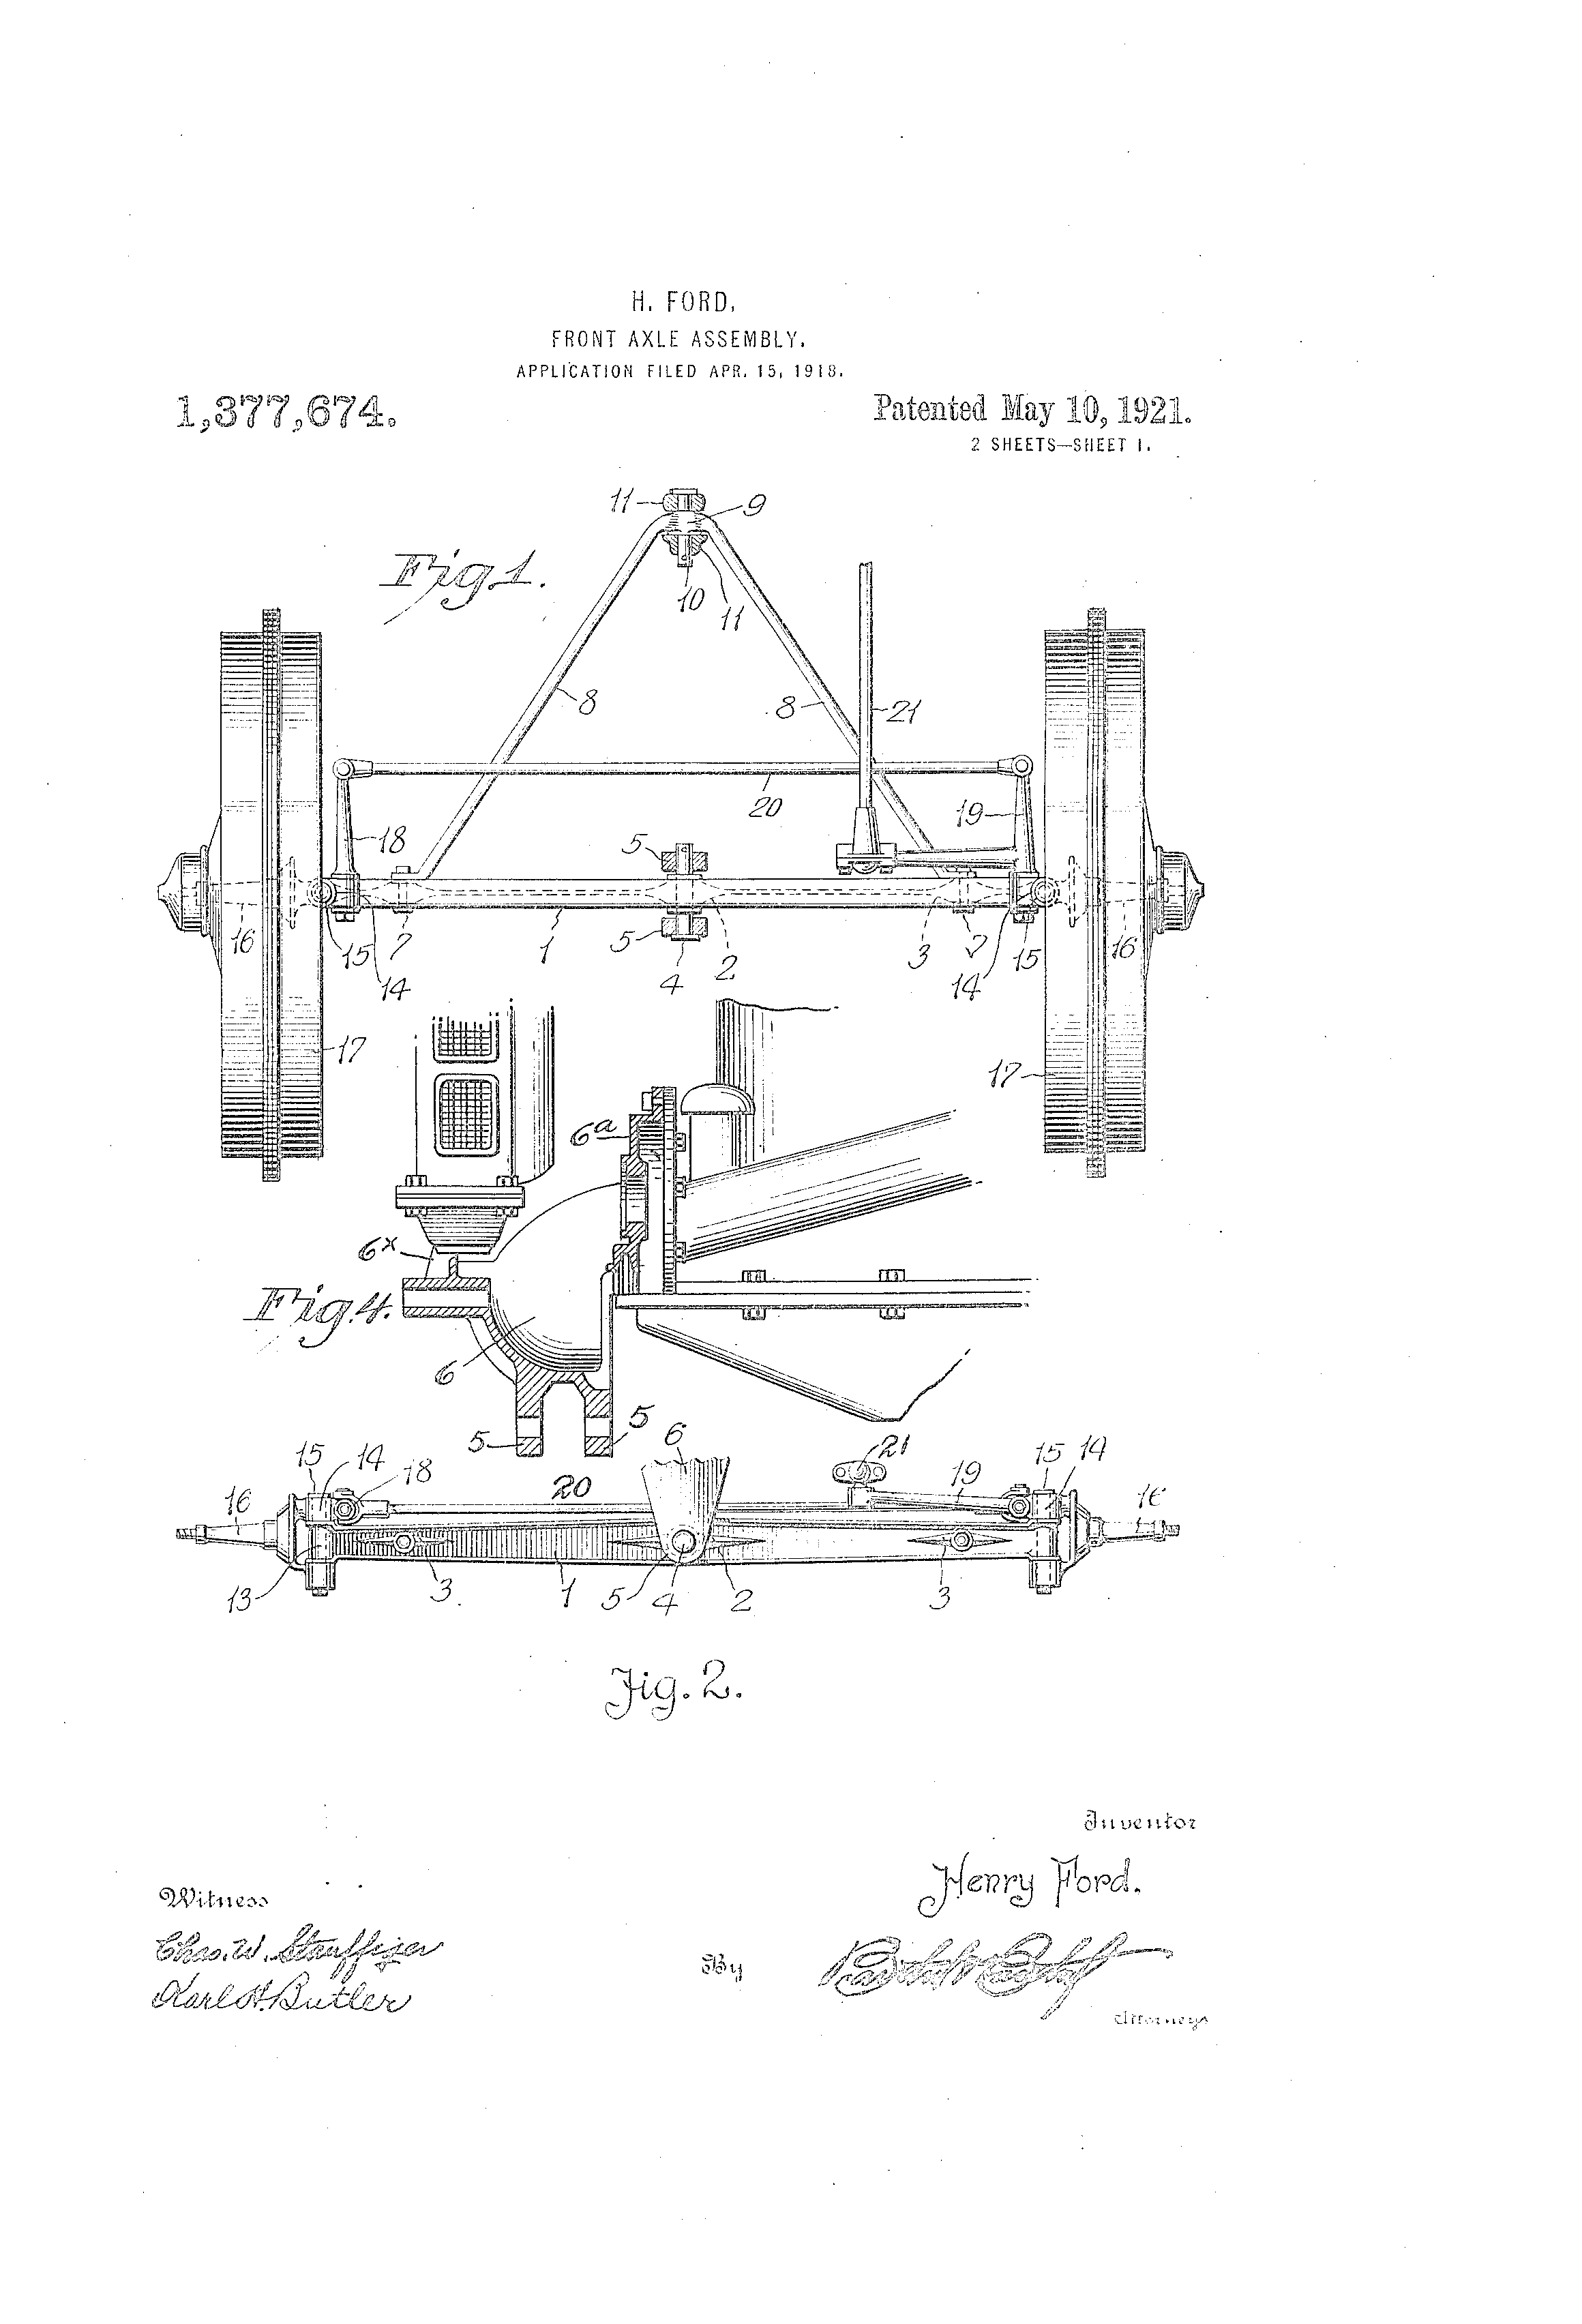 Henry Ford Front Axle Patent